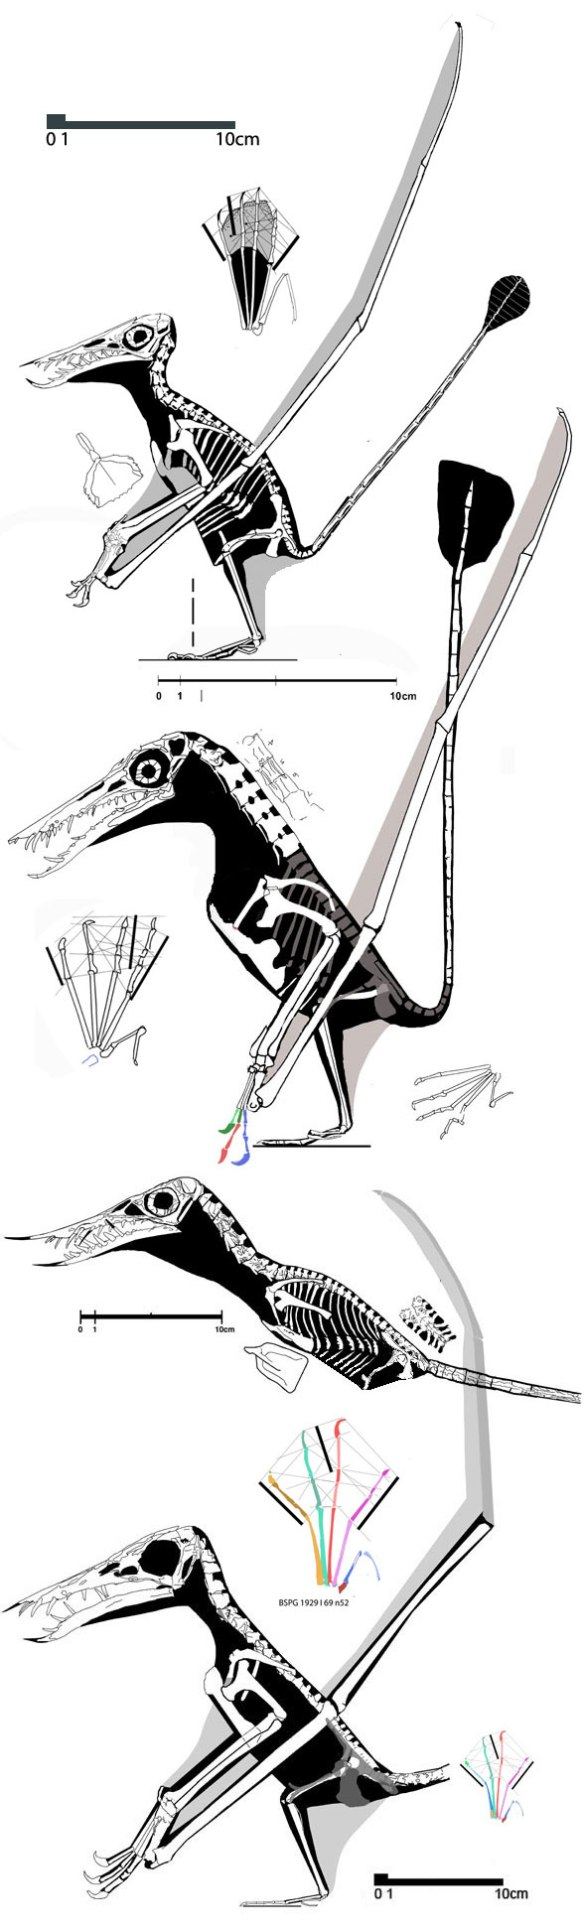 Figure 3. Rhamphorhynchus evolution. part 2. Following the giant no. 81, these rhamphs were all about half of its size yet display derived traits leading to the last of this clade, no. 52. The details are important!